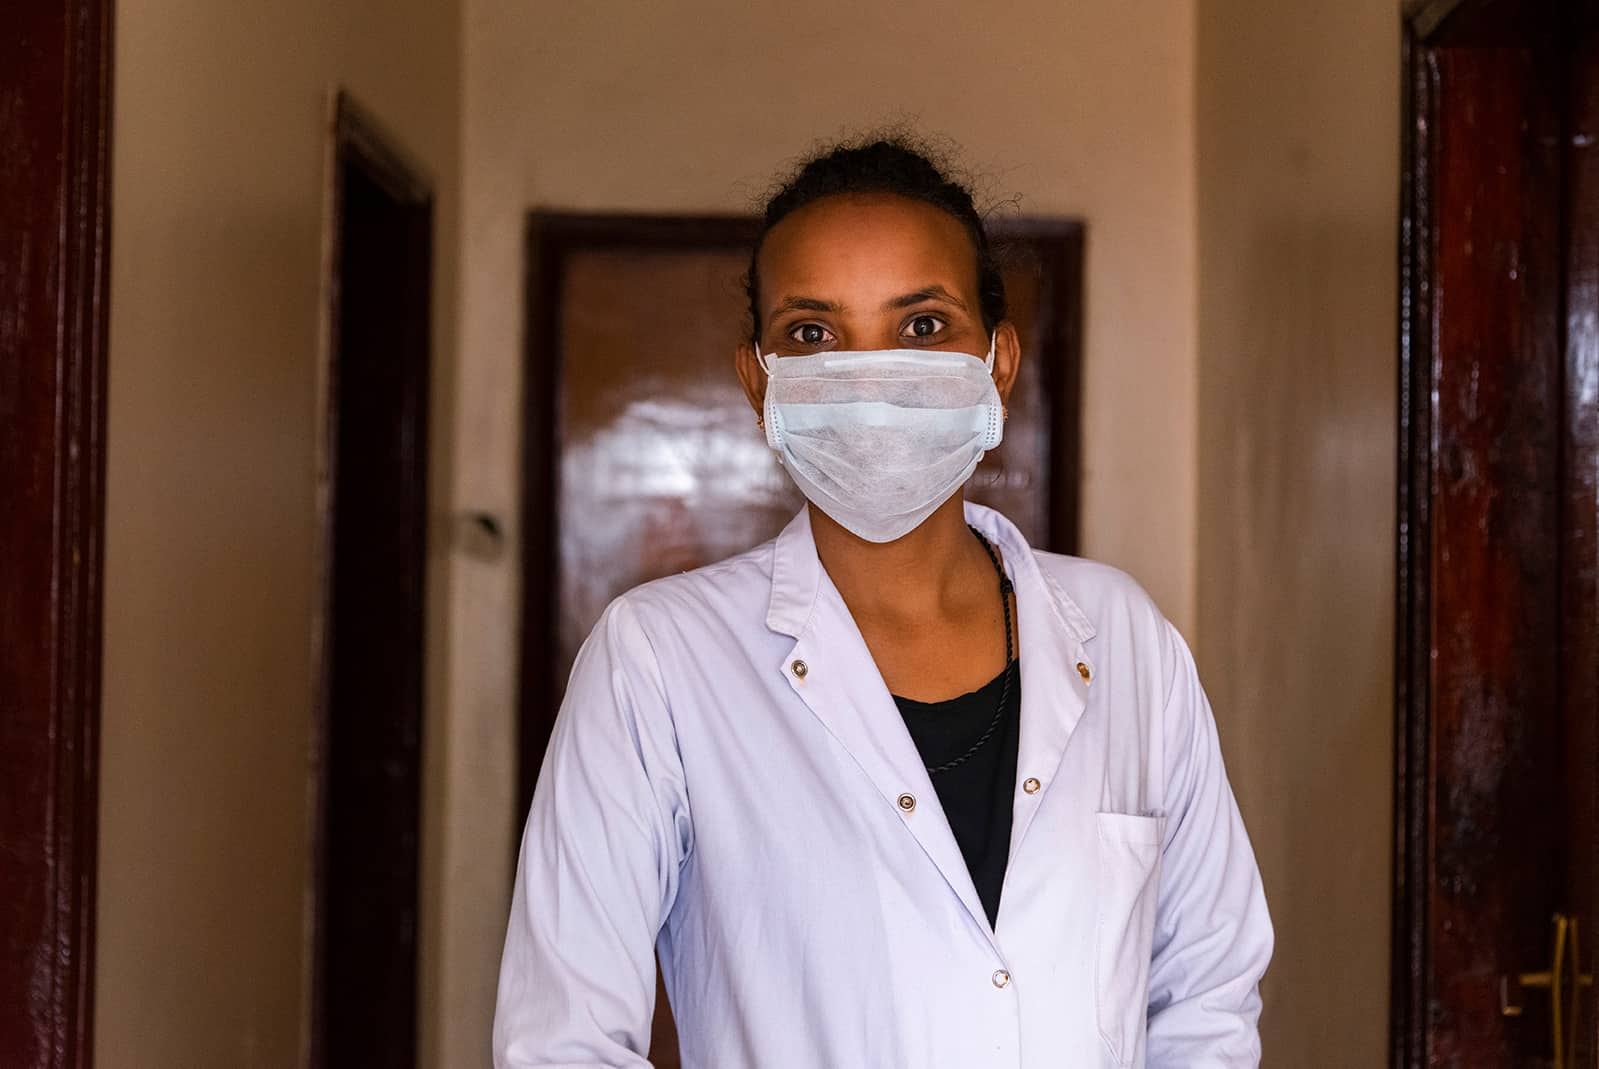 Dr. Addisalem Gebresilassie wearing scrubs and surgical mask